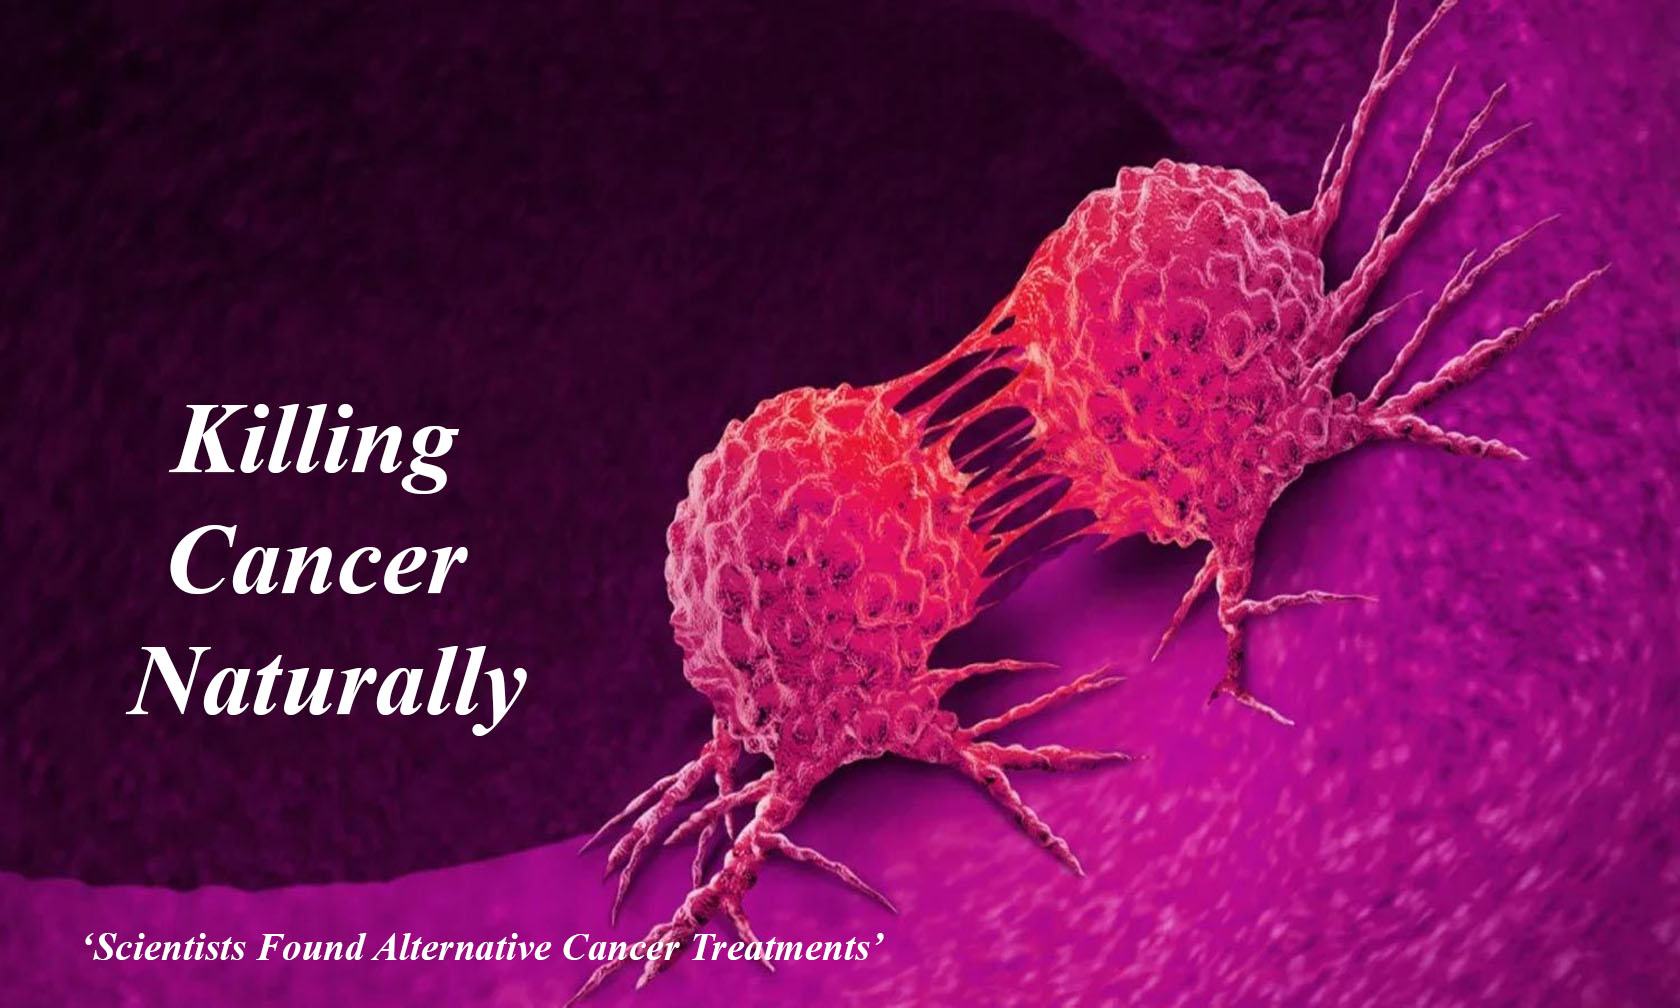 Killing Cancer Naturally: Scientists Found Alternative Cancer Treatments